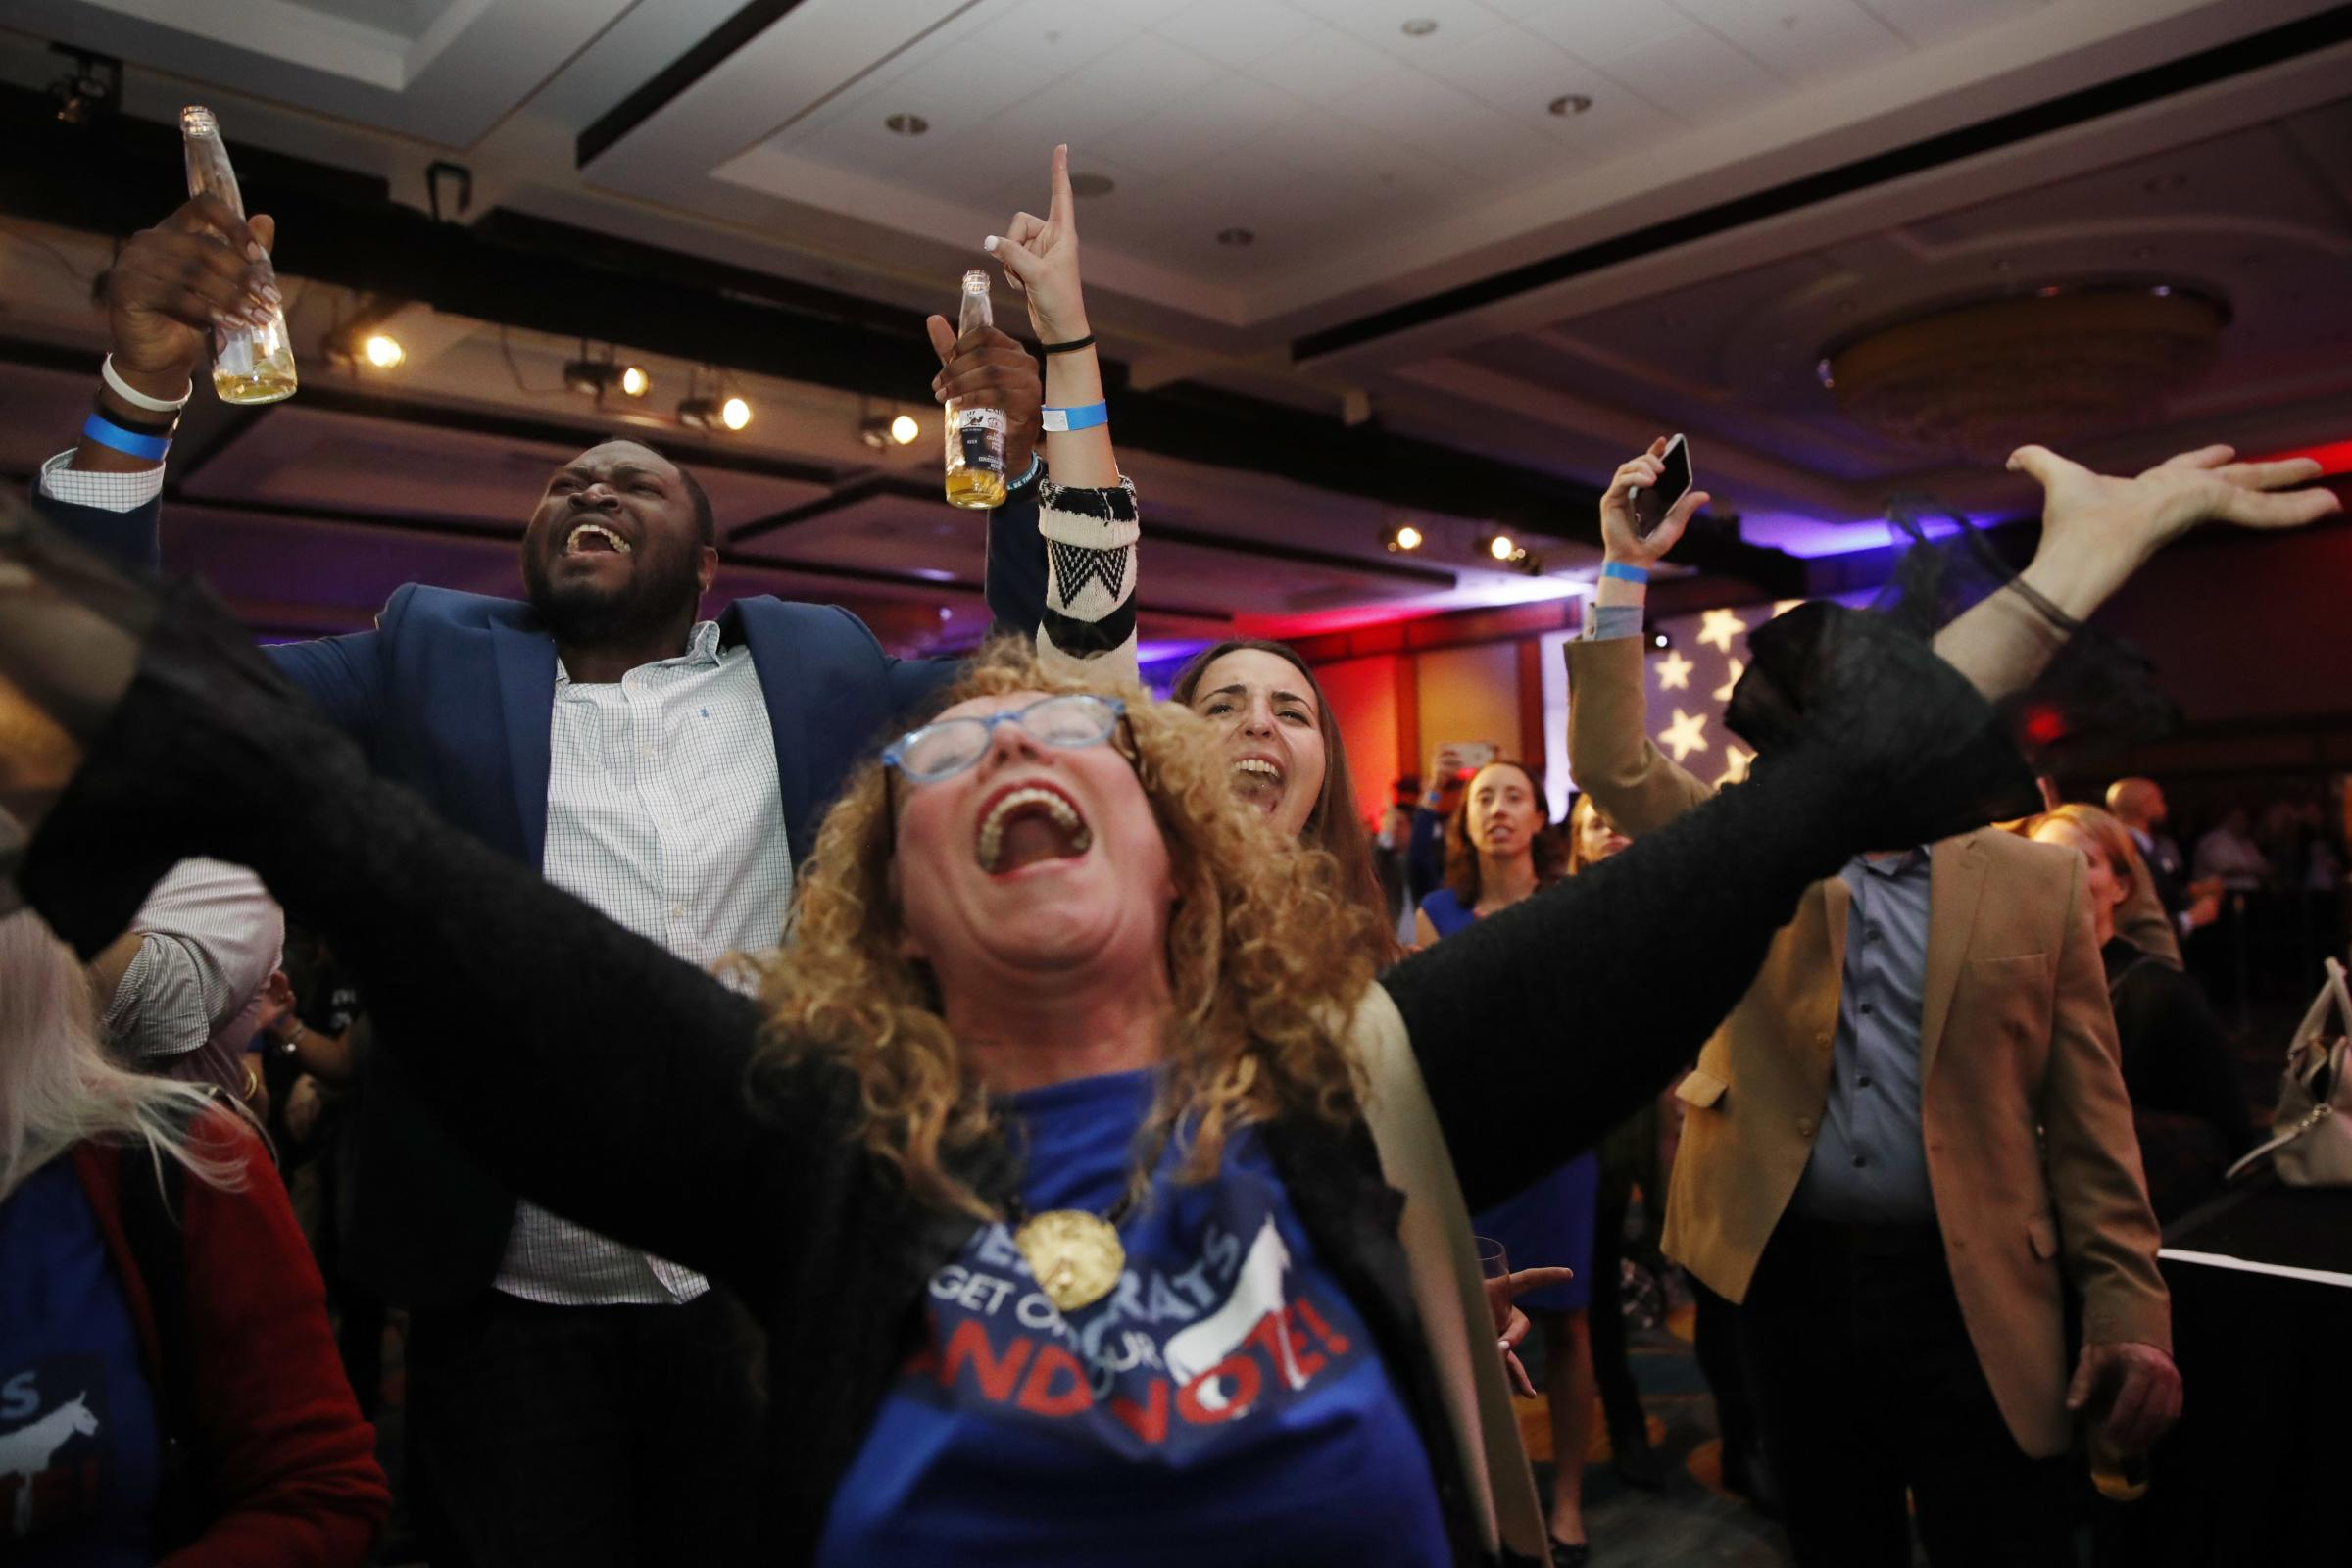 Six things we've learnt so far from the US midterm elections